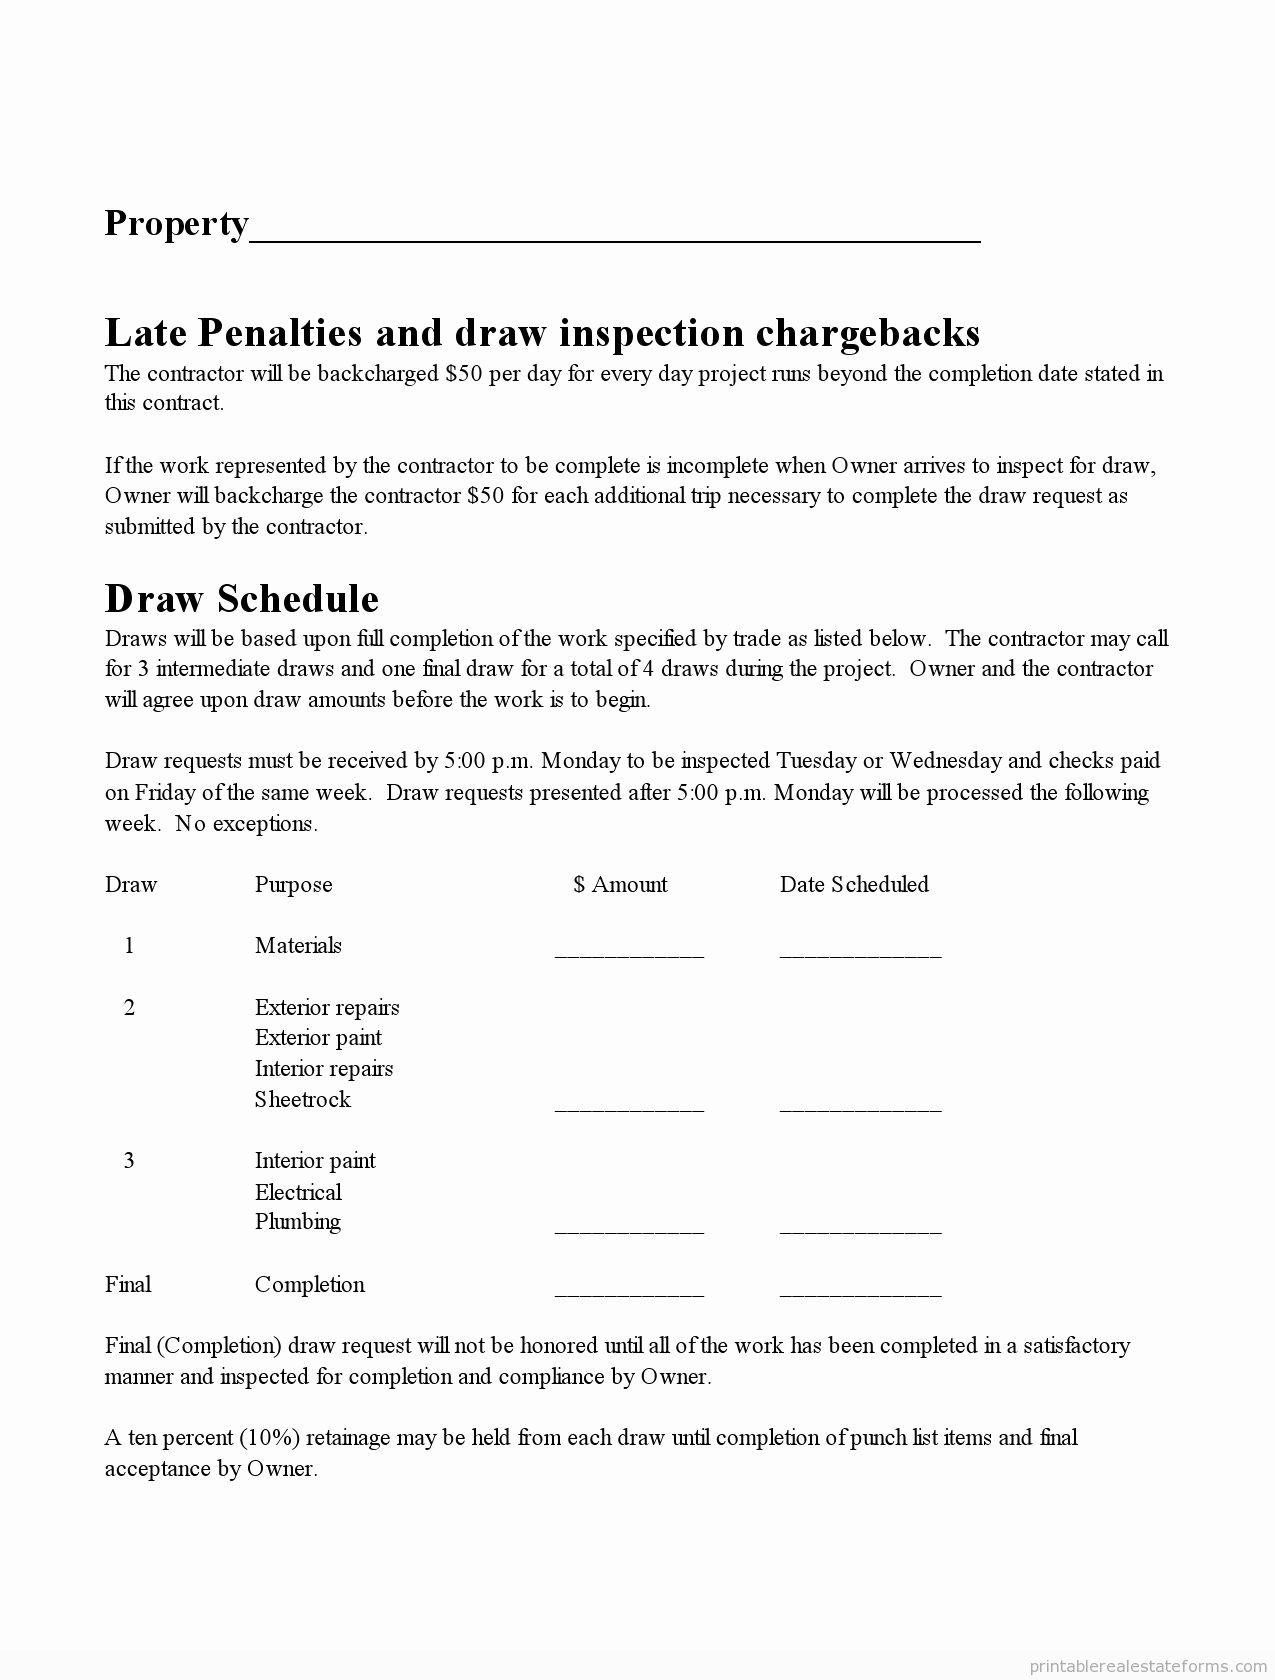 Draw Request Form Template Elegant Free Printable Subcontractor Agreement Form Word Real Estate Forms Real Estate Business Plan Legal Forms